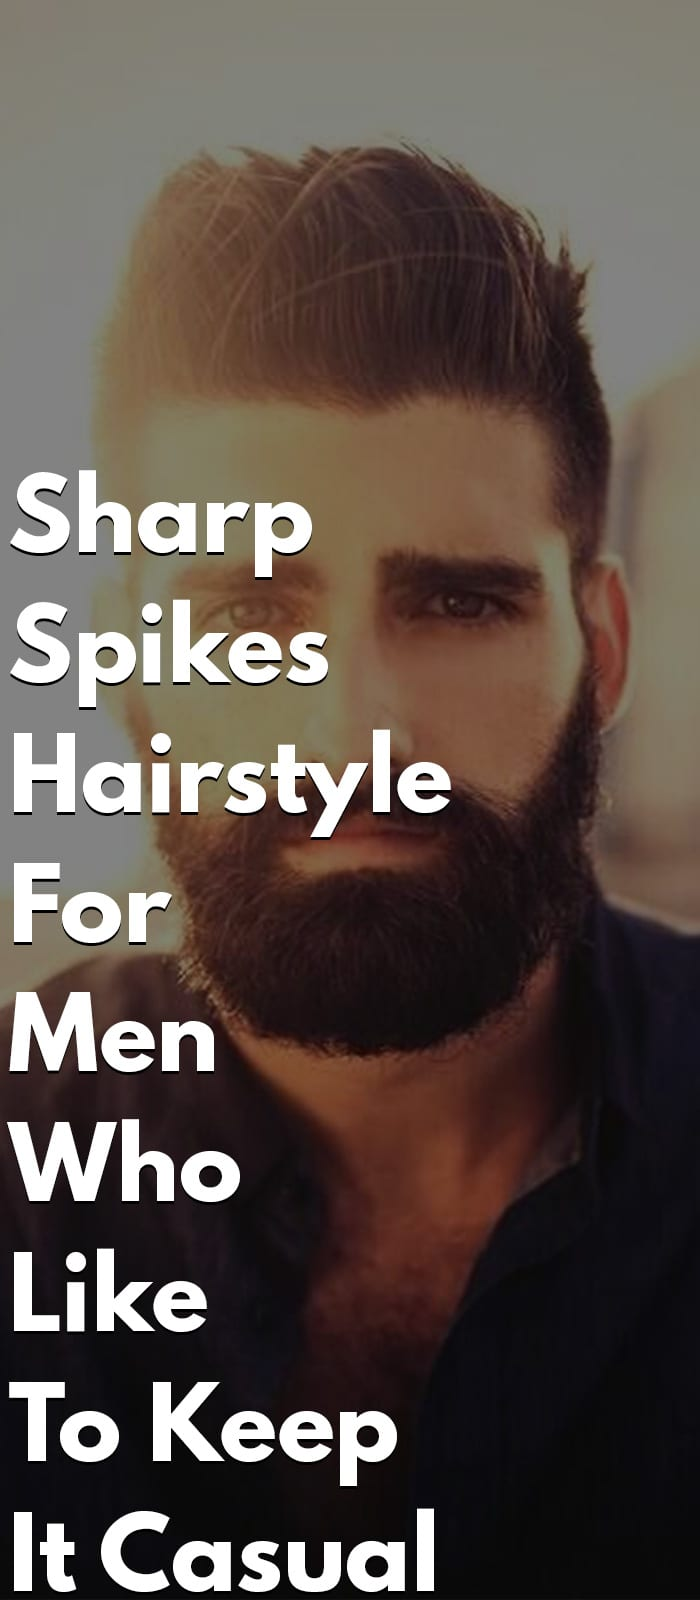 Sharp Spikes Hairstyle For Men Who Like To Keep It Casual